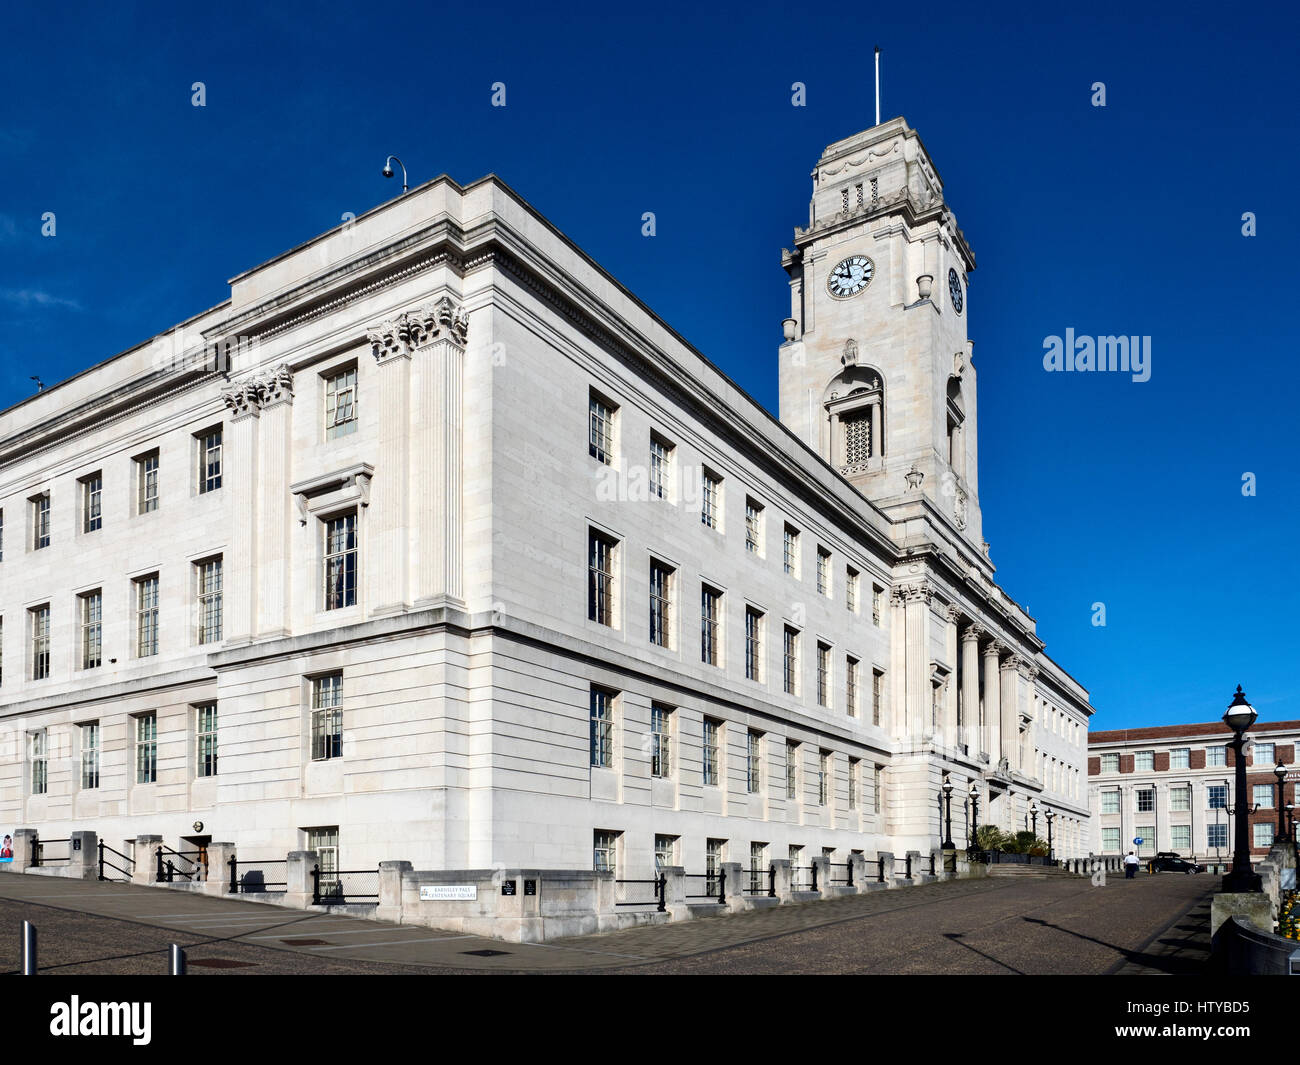 The Portland Stone Town Hall Building at Barnsley South Yorkshire England - Stock Image